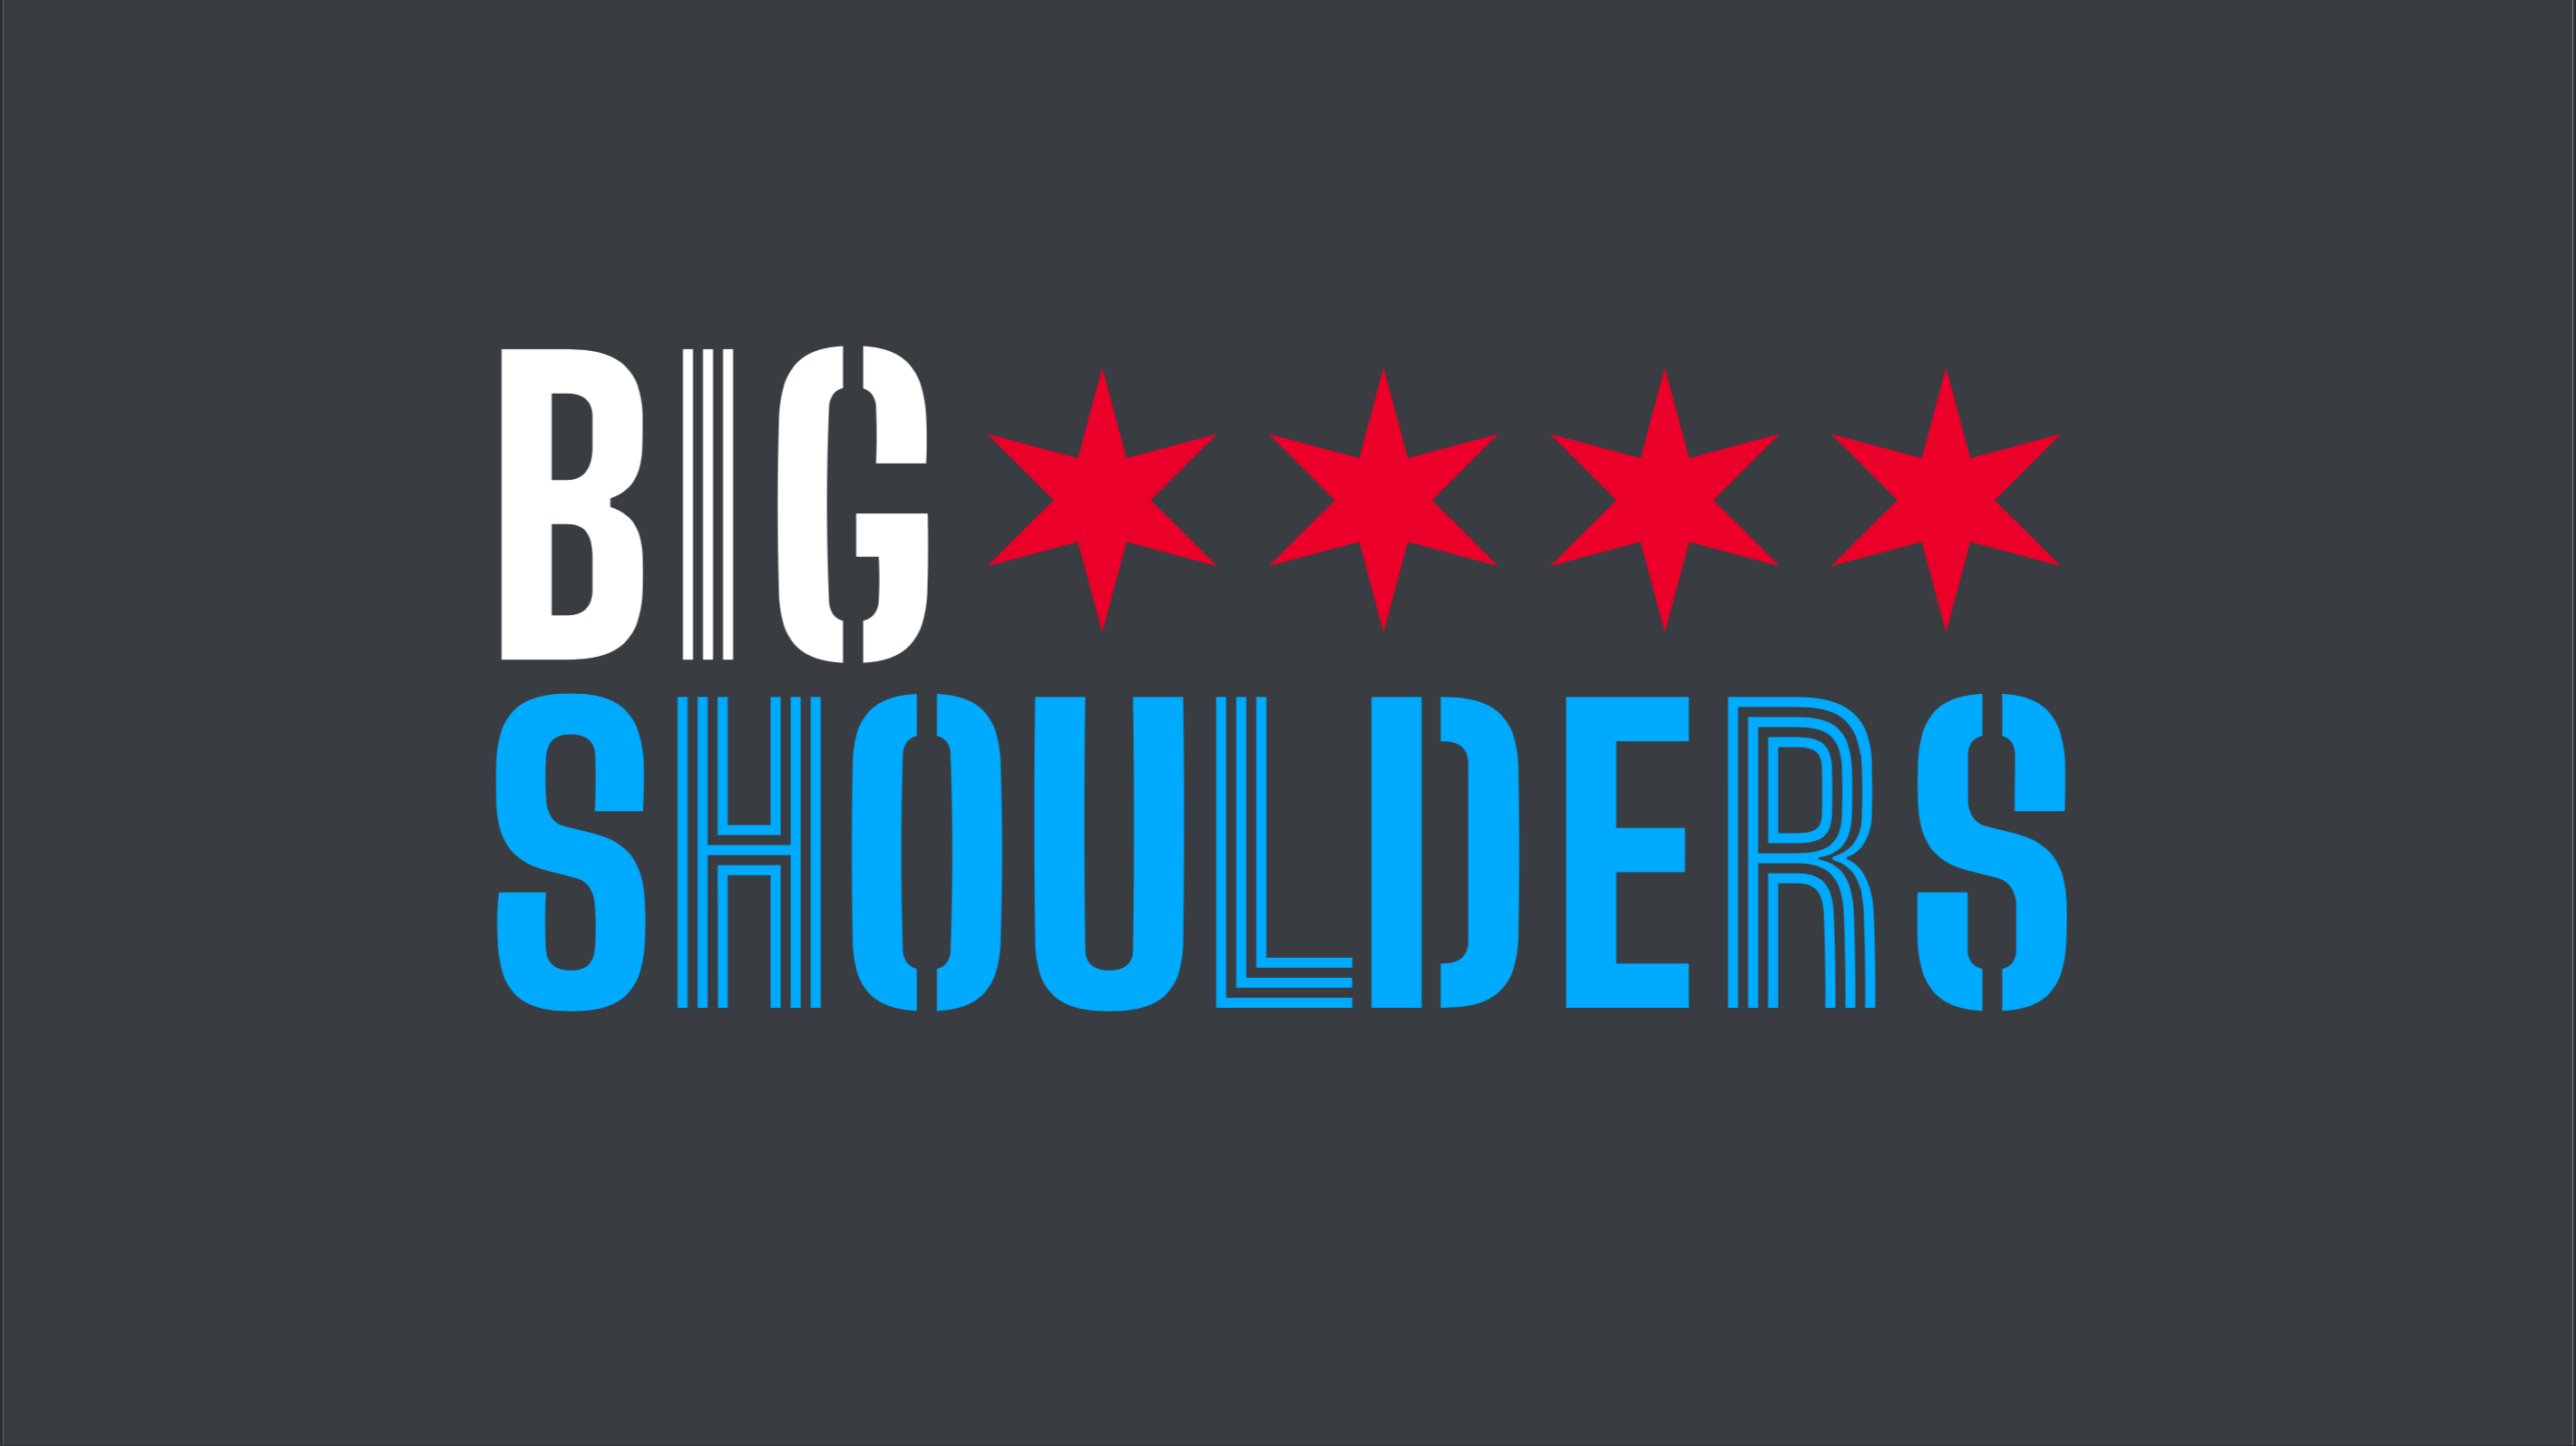 A Picture of Big Shoulders Typeface set in different faces with Chicago Stars